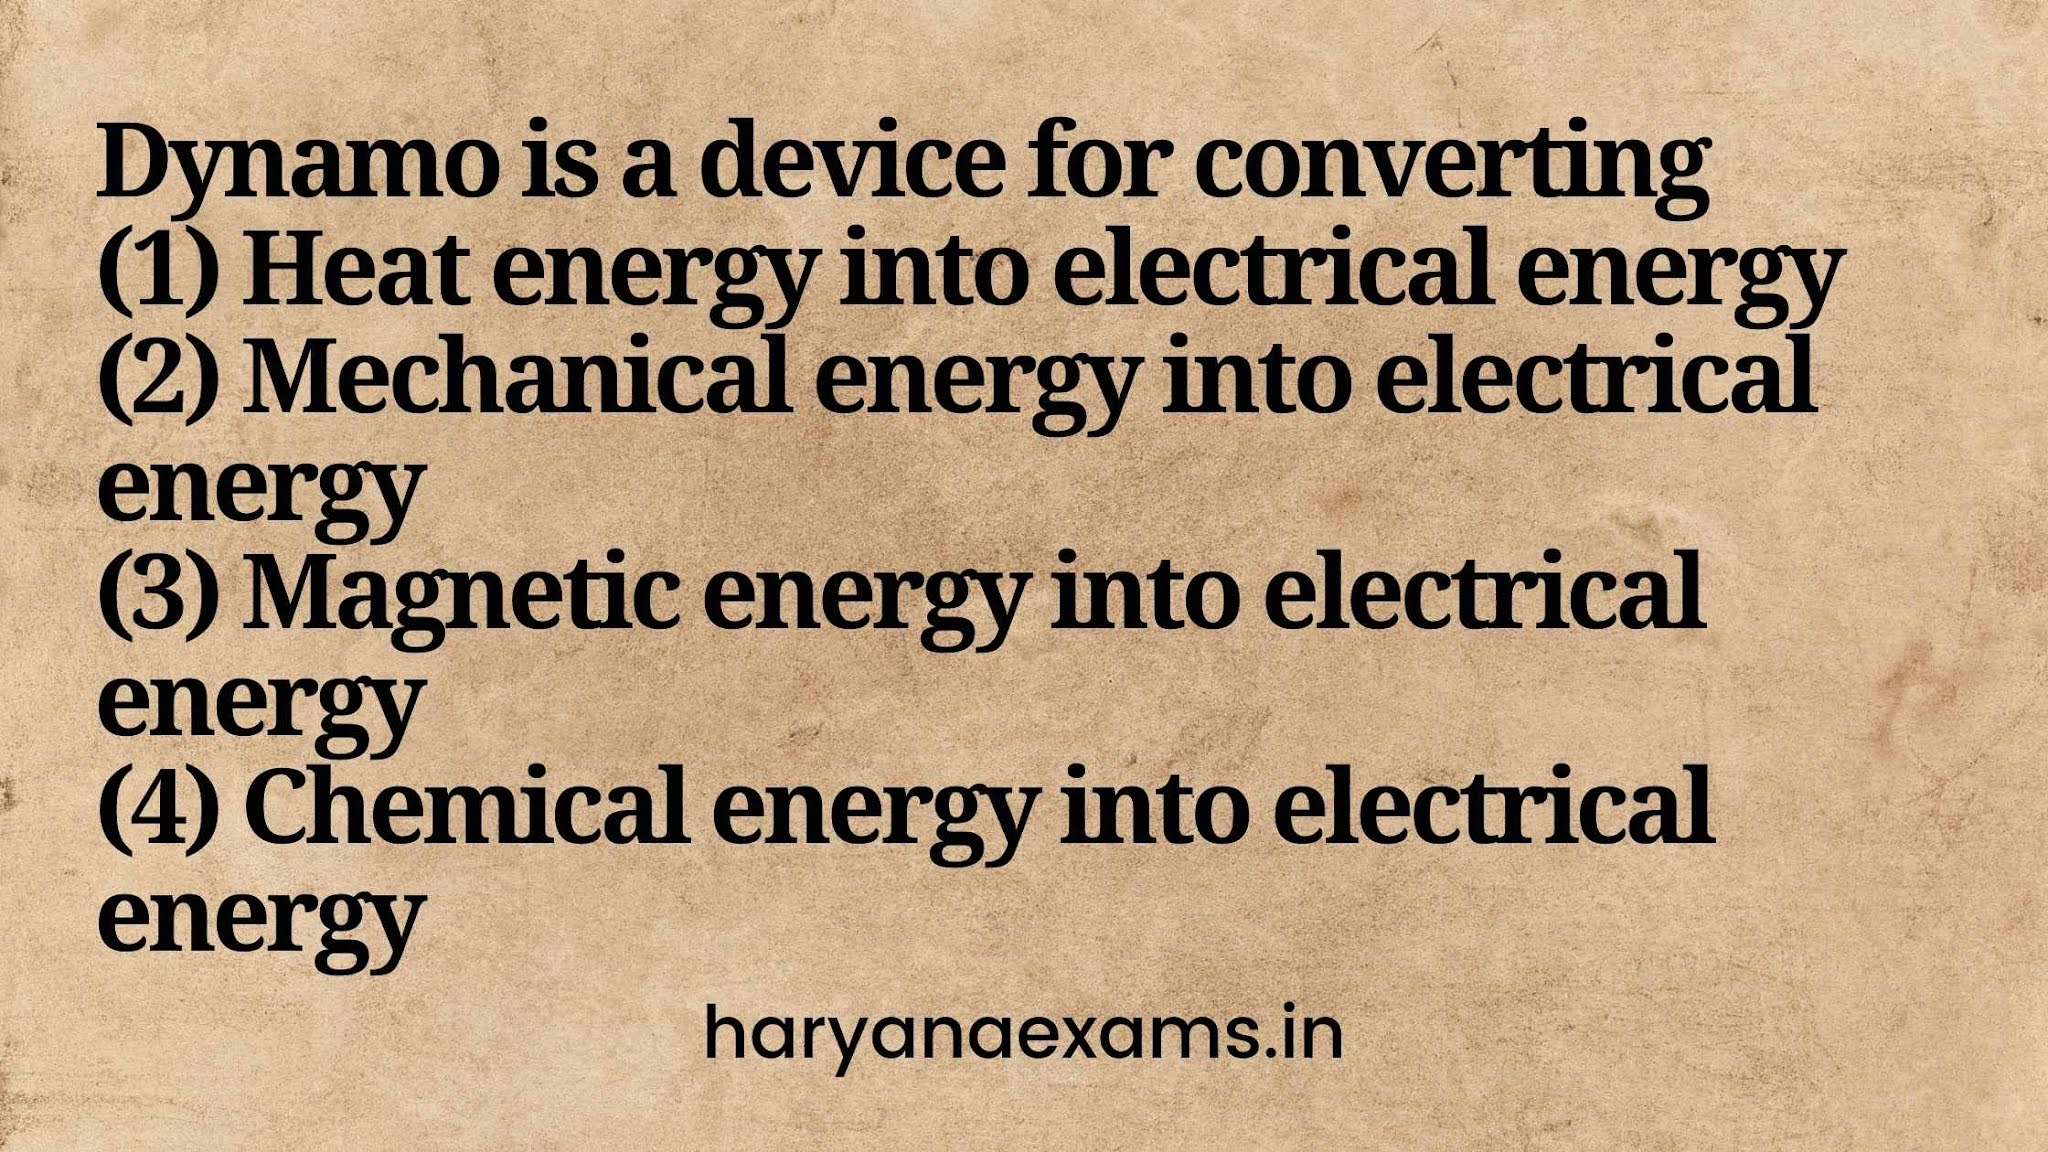 Dynamo is a device for converting   (1) Heat energy into electrical energy   (2) Mechanical energy into electrical energy   (3) Magnetic energy into electrical energy   (4) Chemical energy into electrical energy